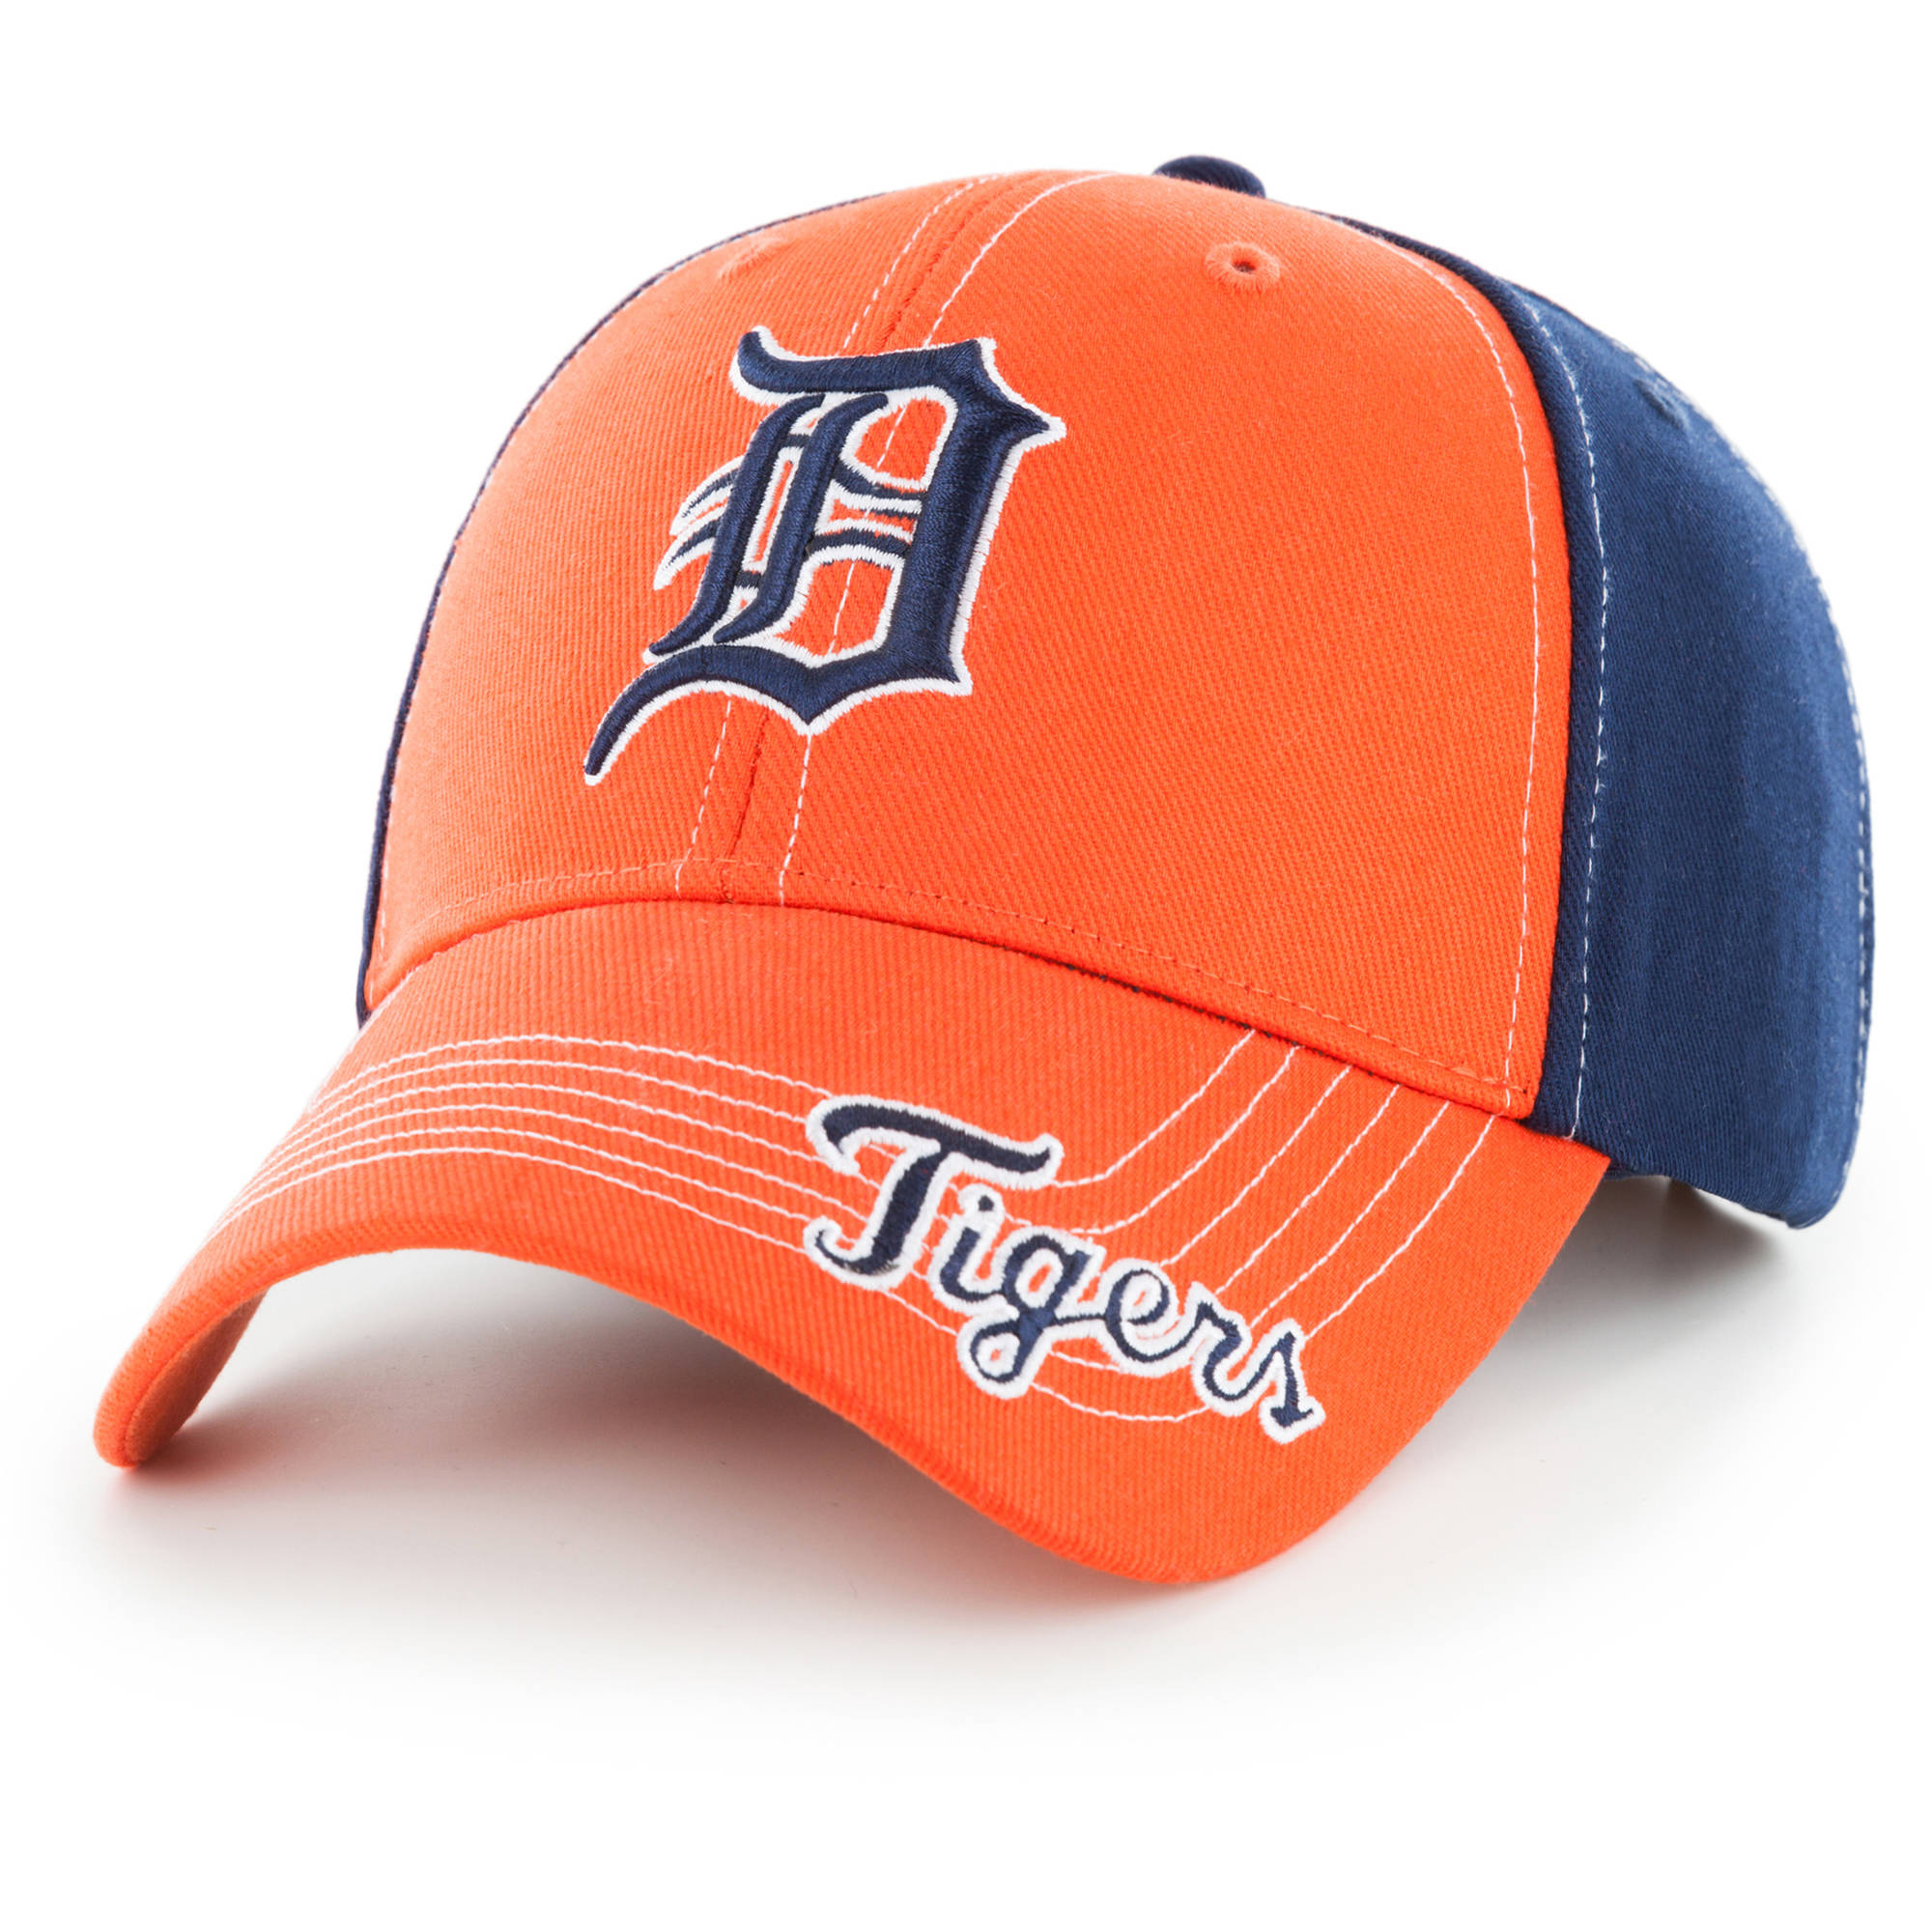 MLB Detroit Tigers  Revolver Cap / Hat  - Fan Favorite